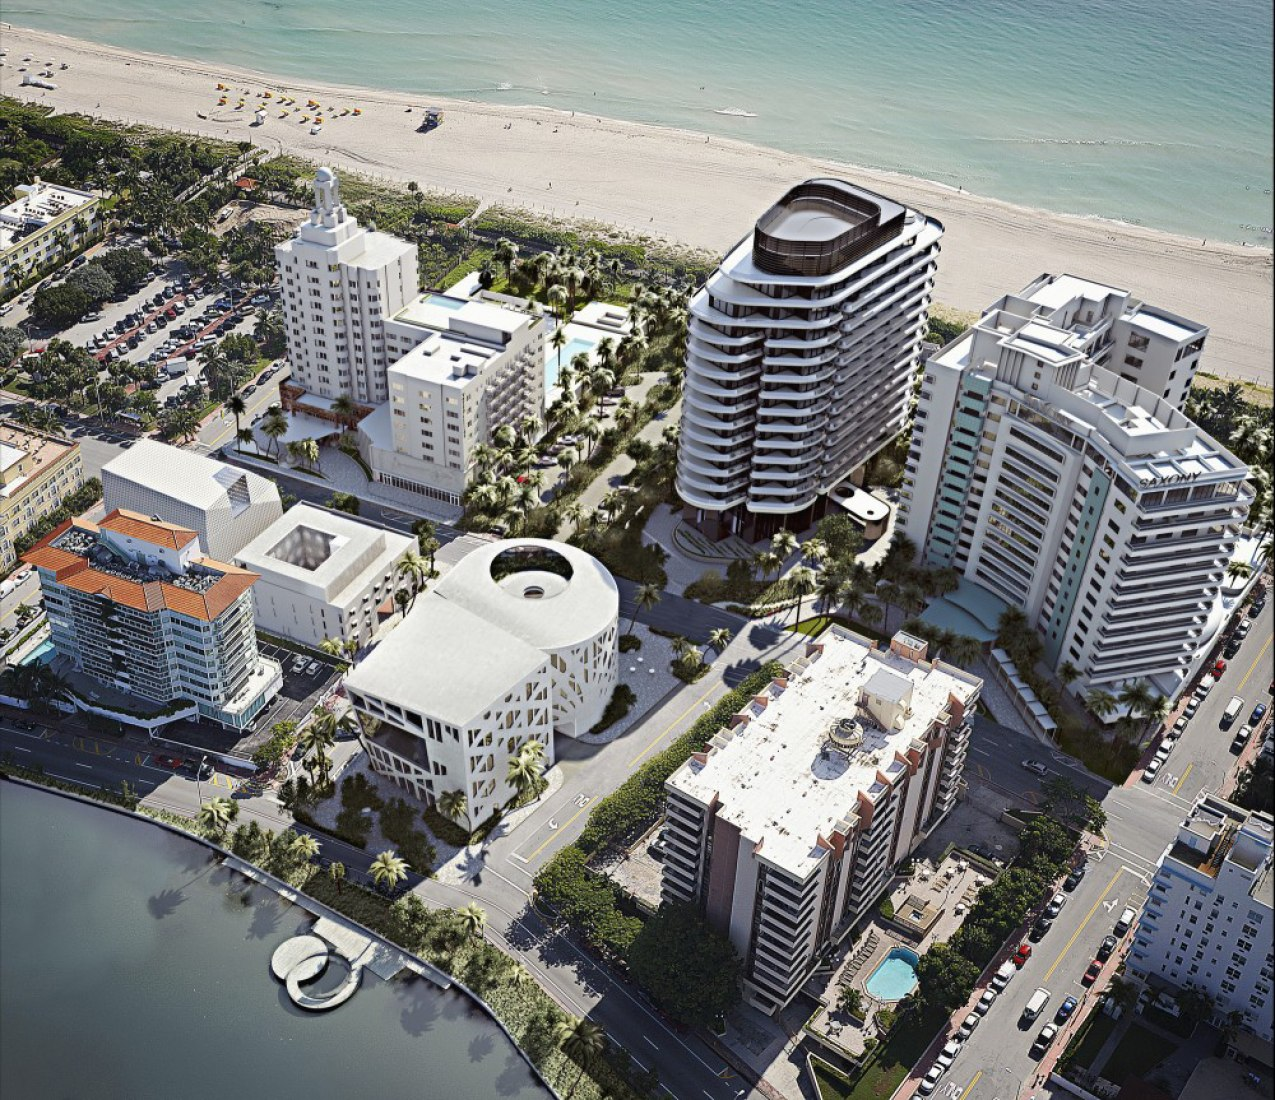 Site plan rendering. Faena Arts Center by OMA.